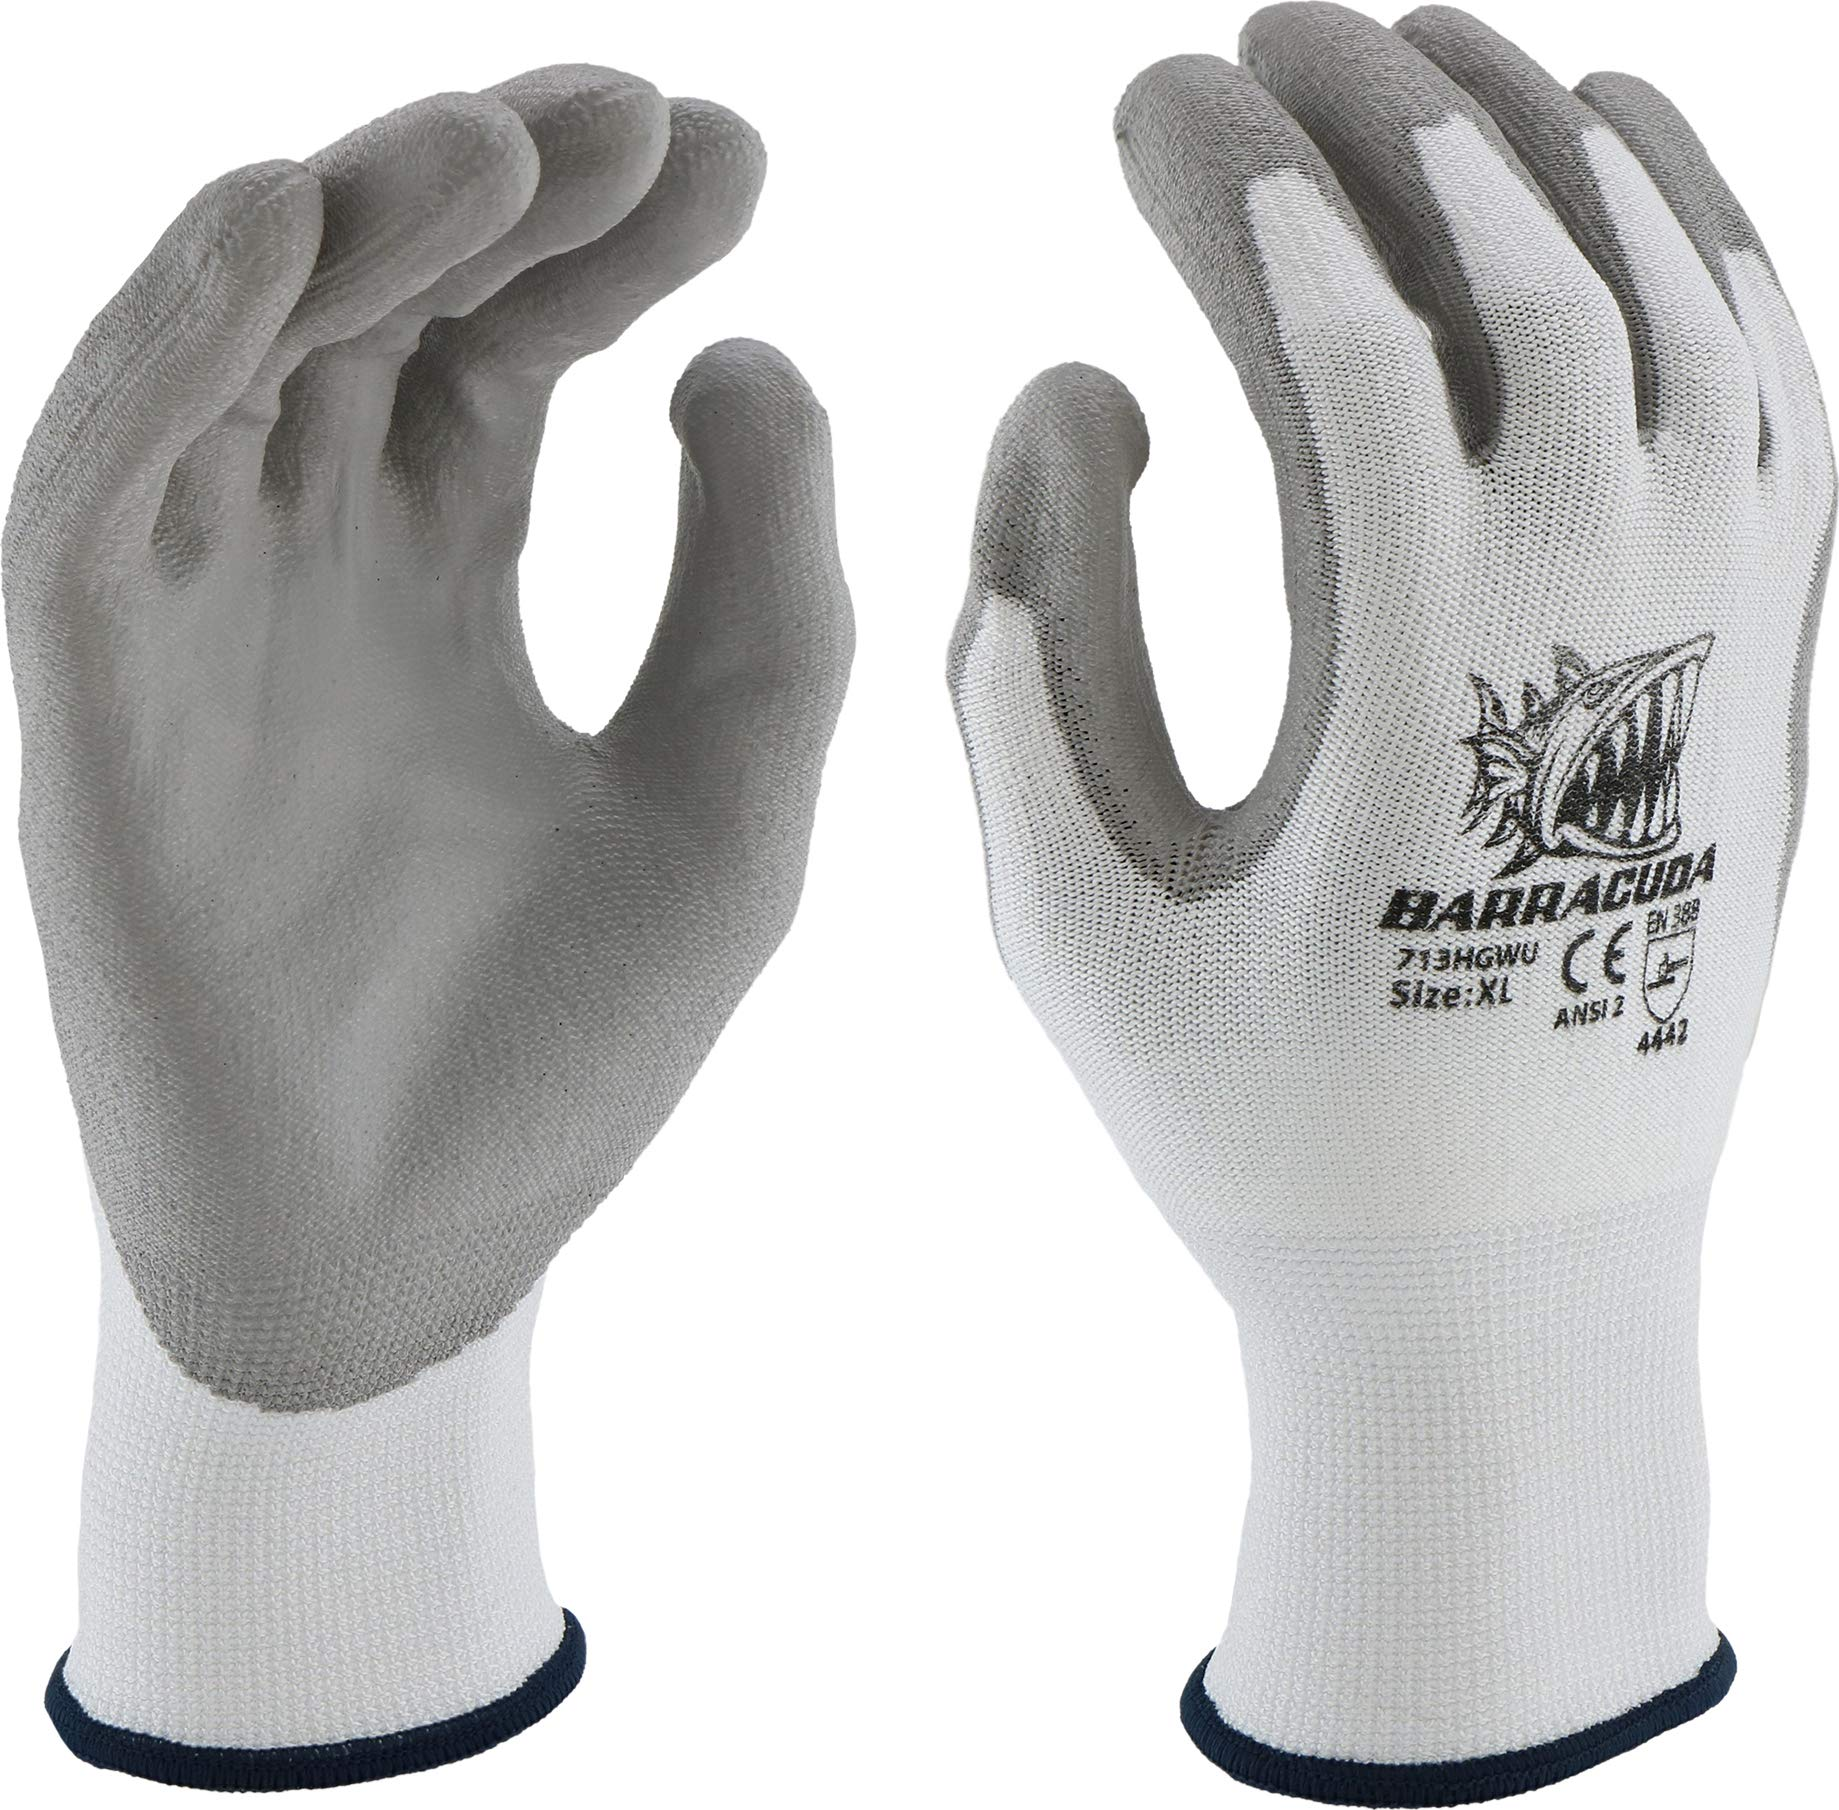 West Chester 713HGWU XL Barracuda White HPPE Shell with Grey PU Dip Cut Protection Gloves, XL (Pack of 12) by West Chester (Image #1)